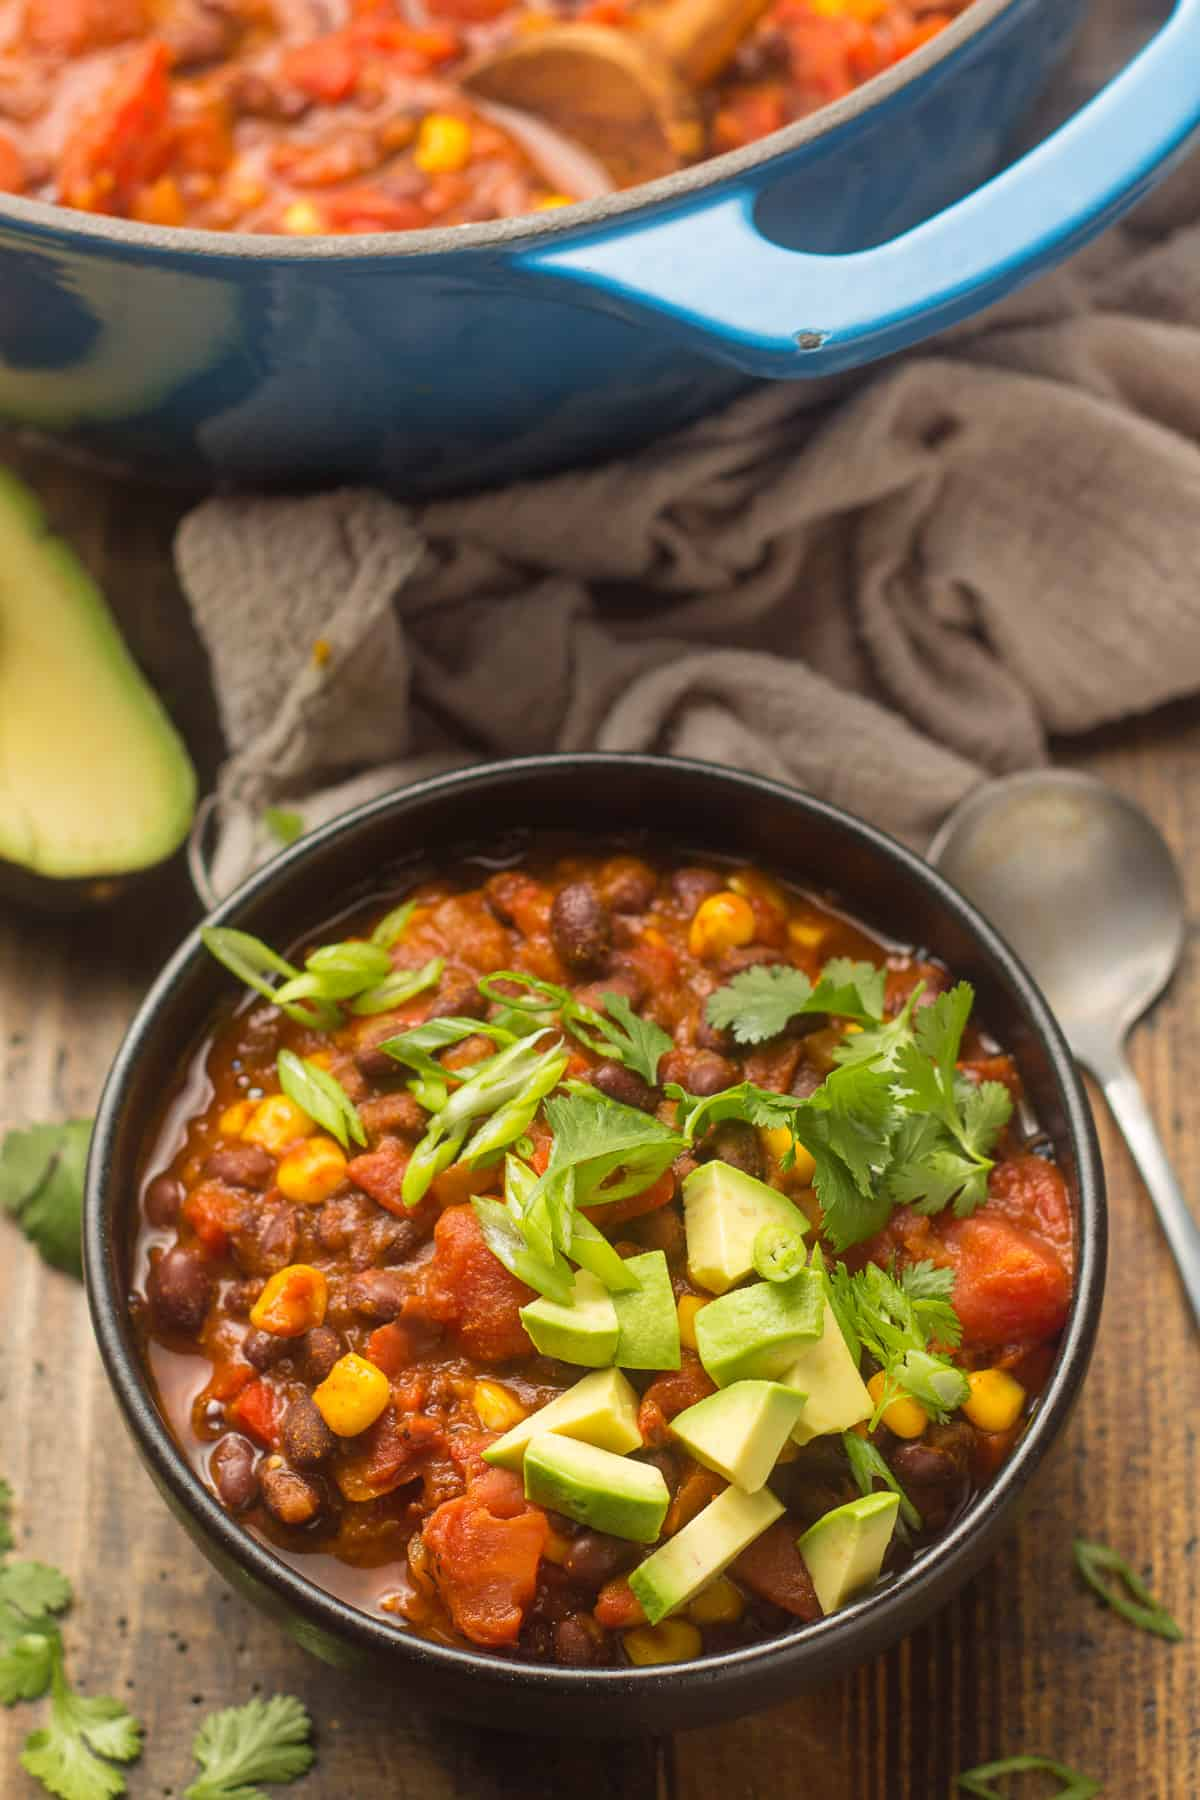 Bowl of Black Bean Chili with Spoon on the Side and Pot in the Background